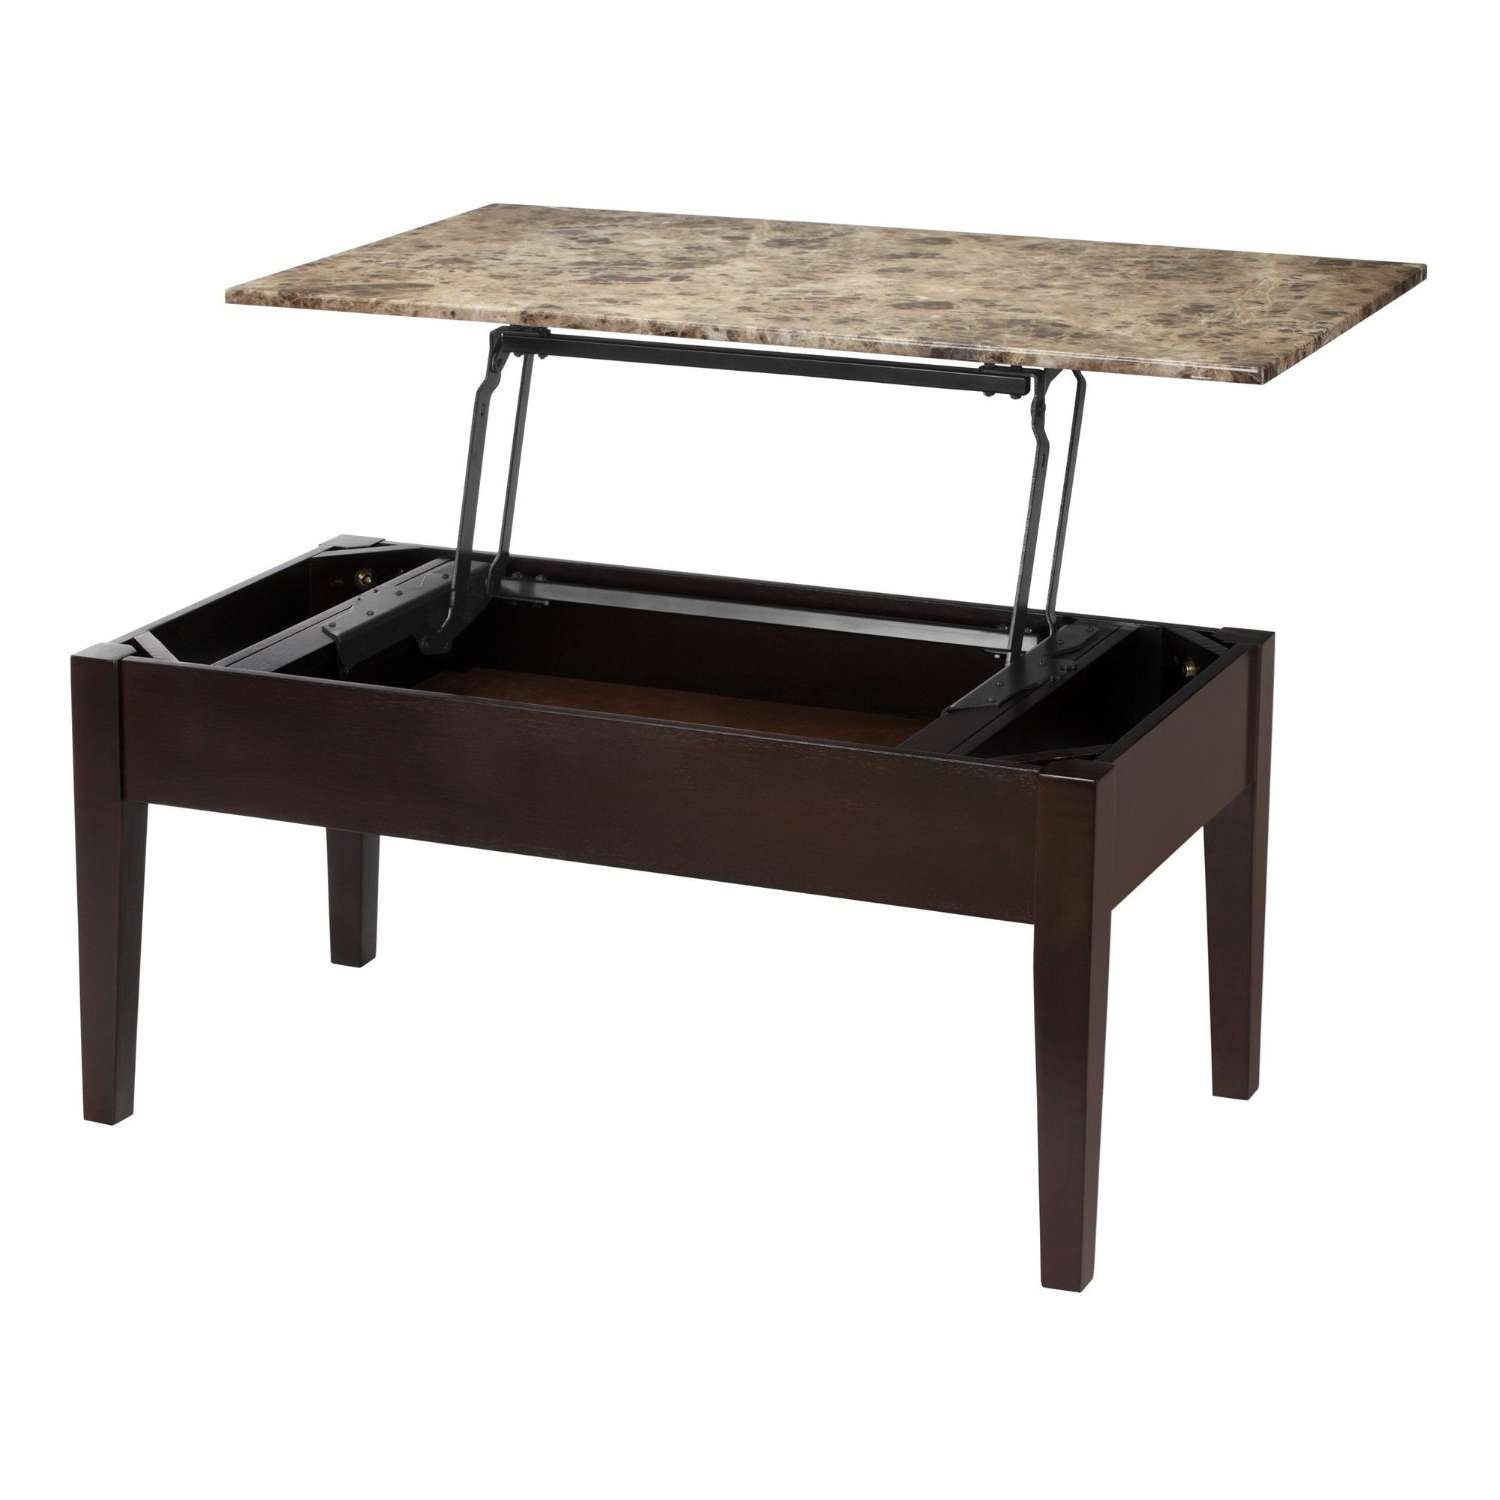 Cheap Coffee Tables Under $100 That Work For Every Style Within 2018 Cheap Coffee Tables (View 3 of 20)